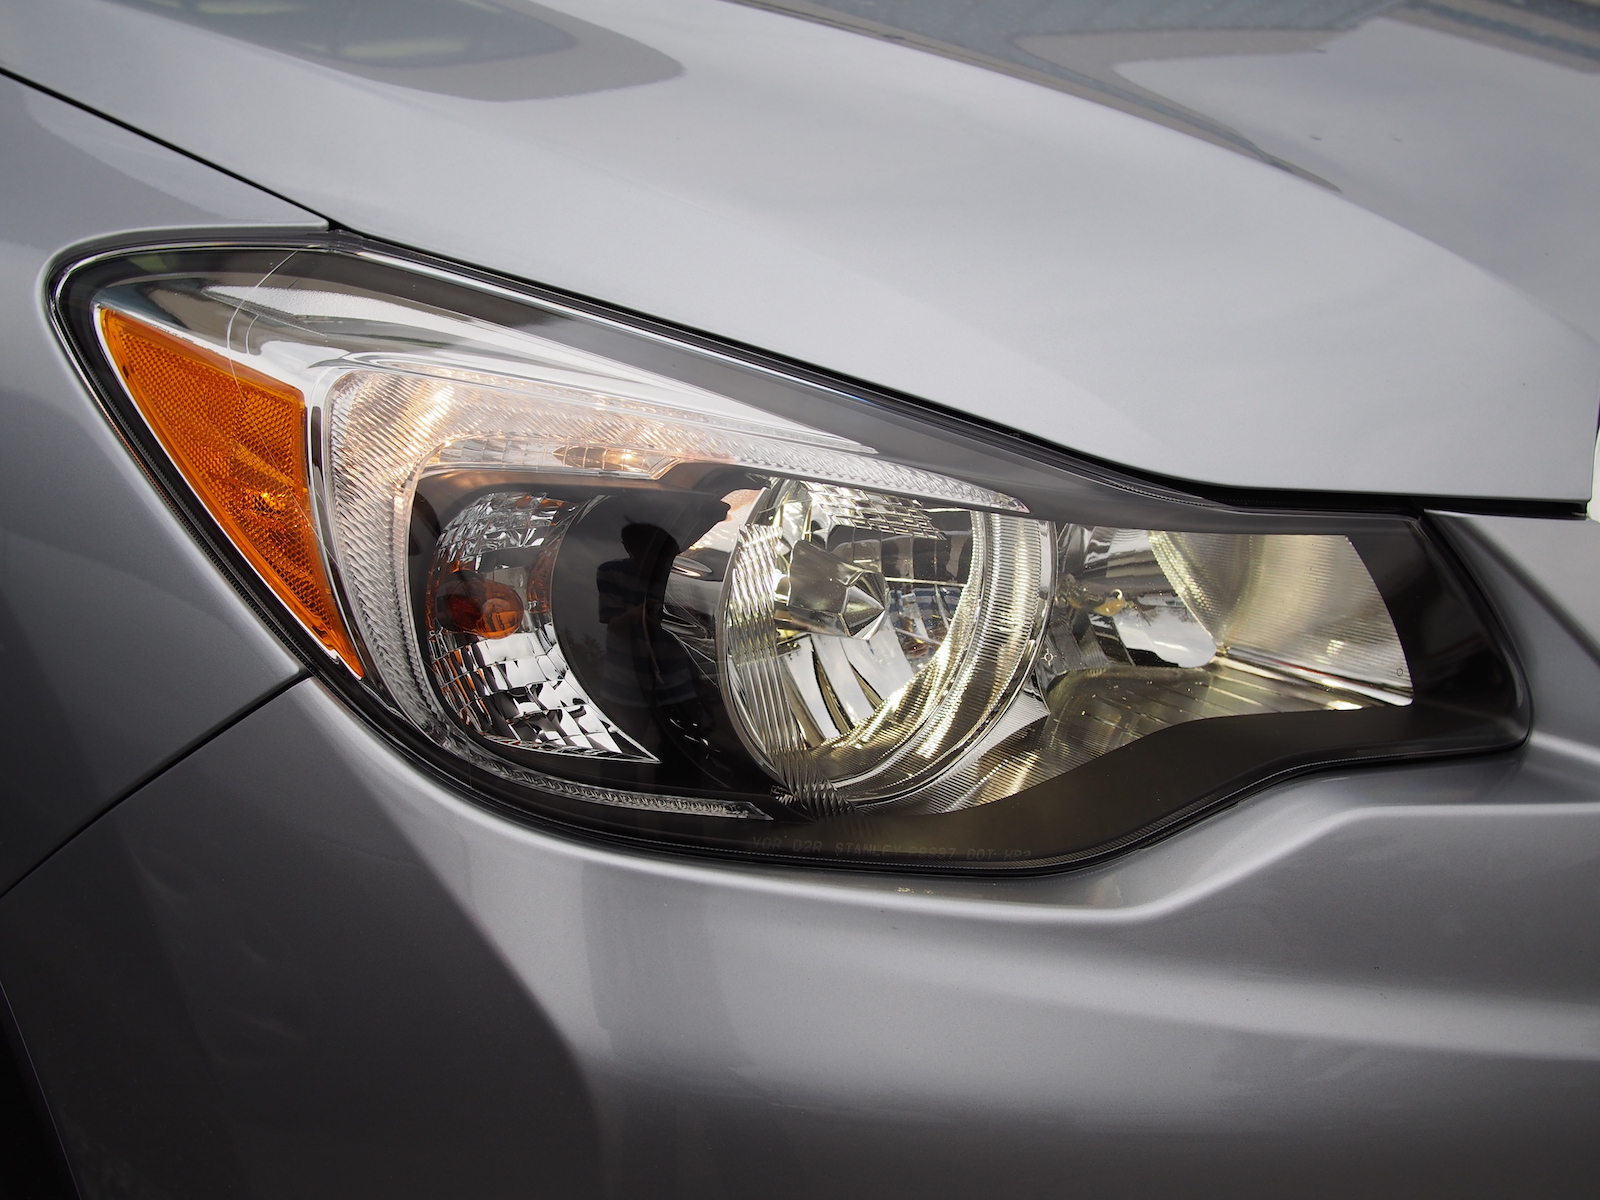 Subaru Xv Crosstrek Headlights on Subaru Boxer Engine Technology